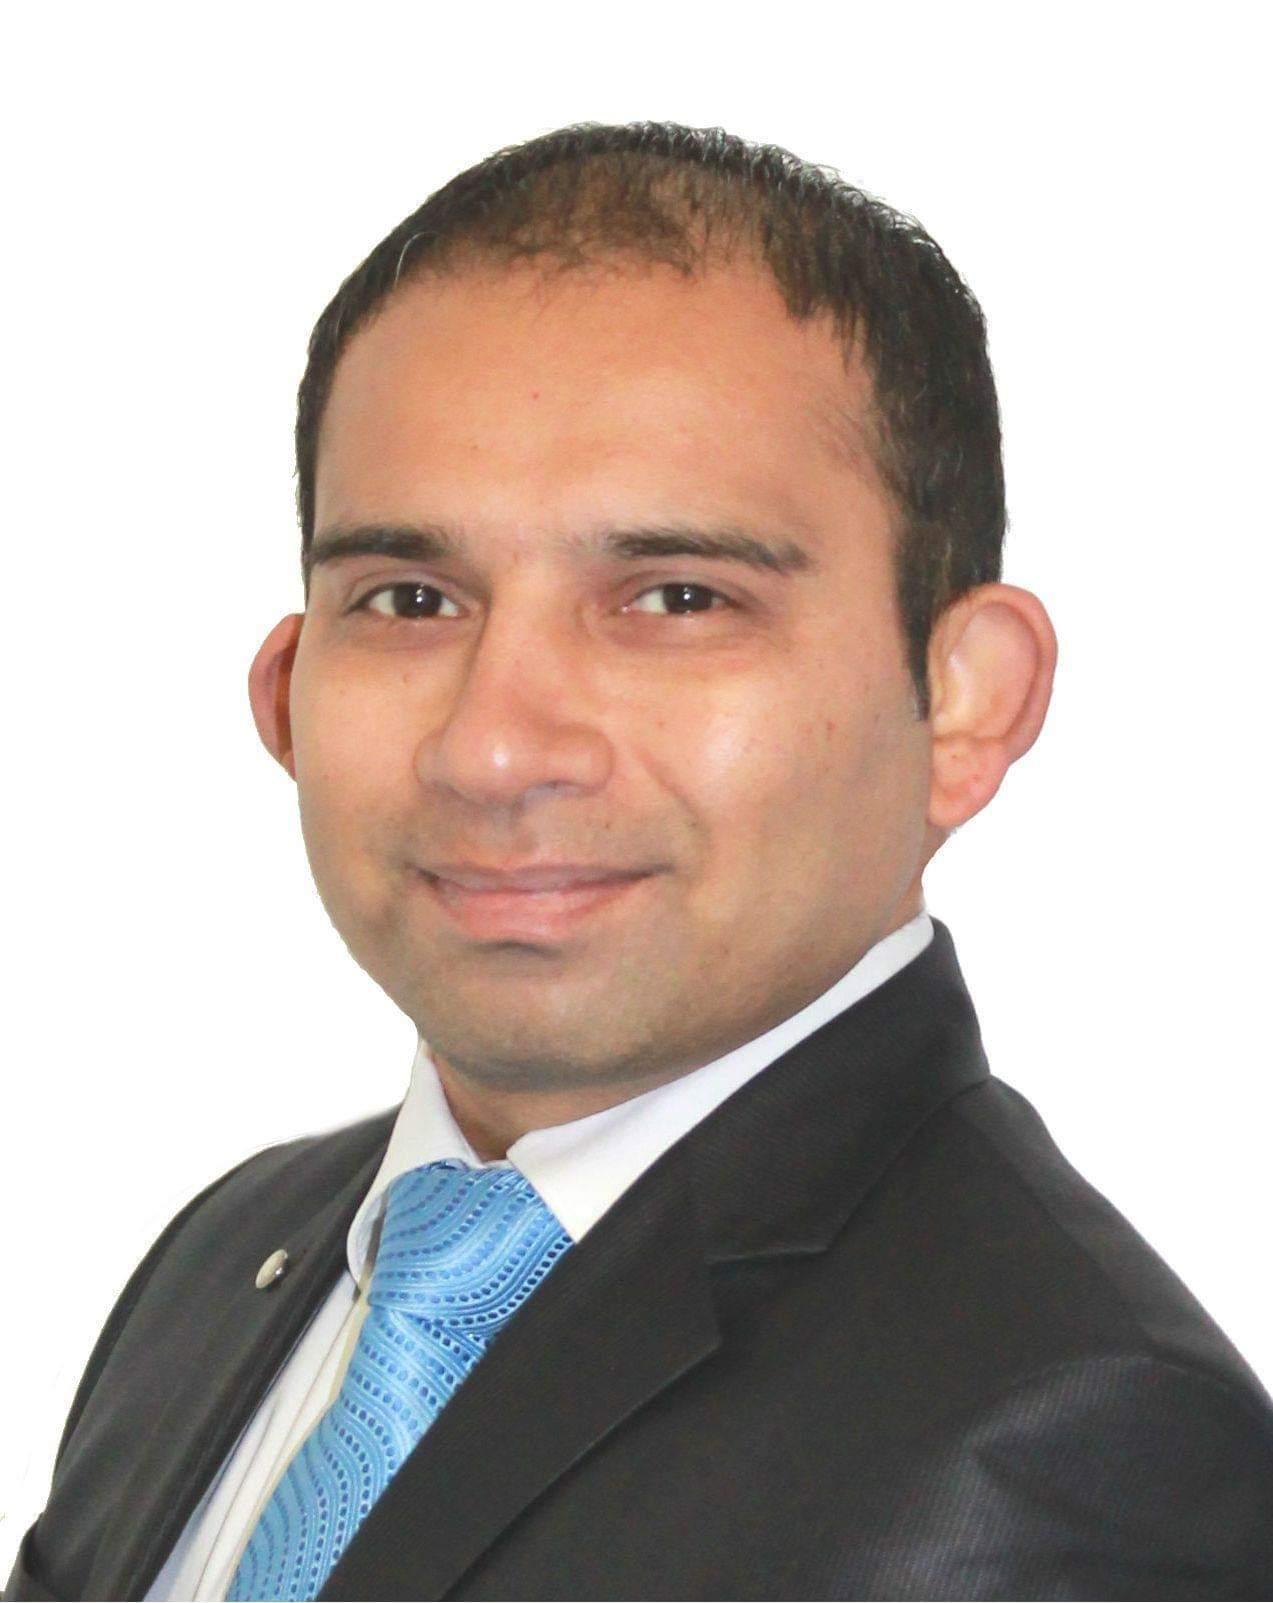 Anand Birai Image from Shields Commercial Real Estate